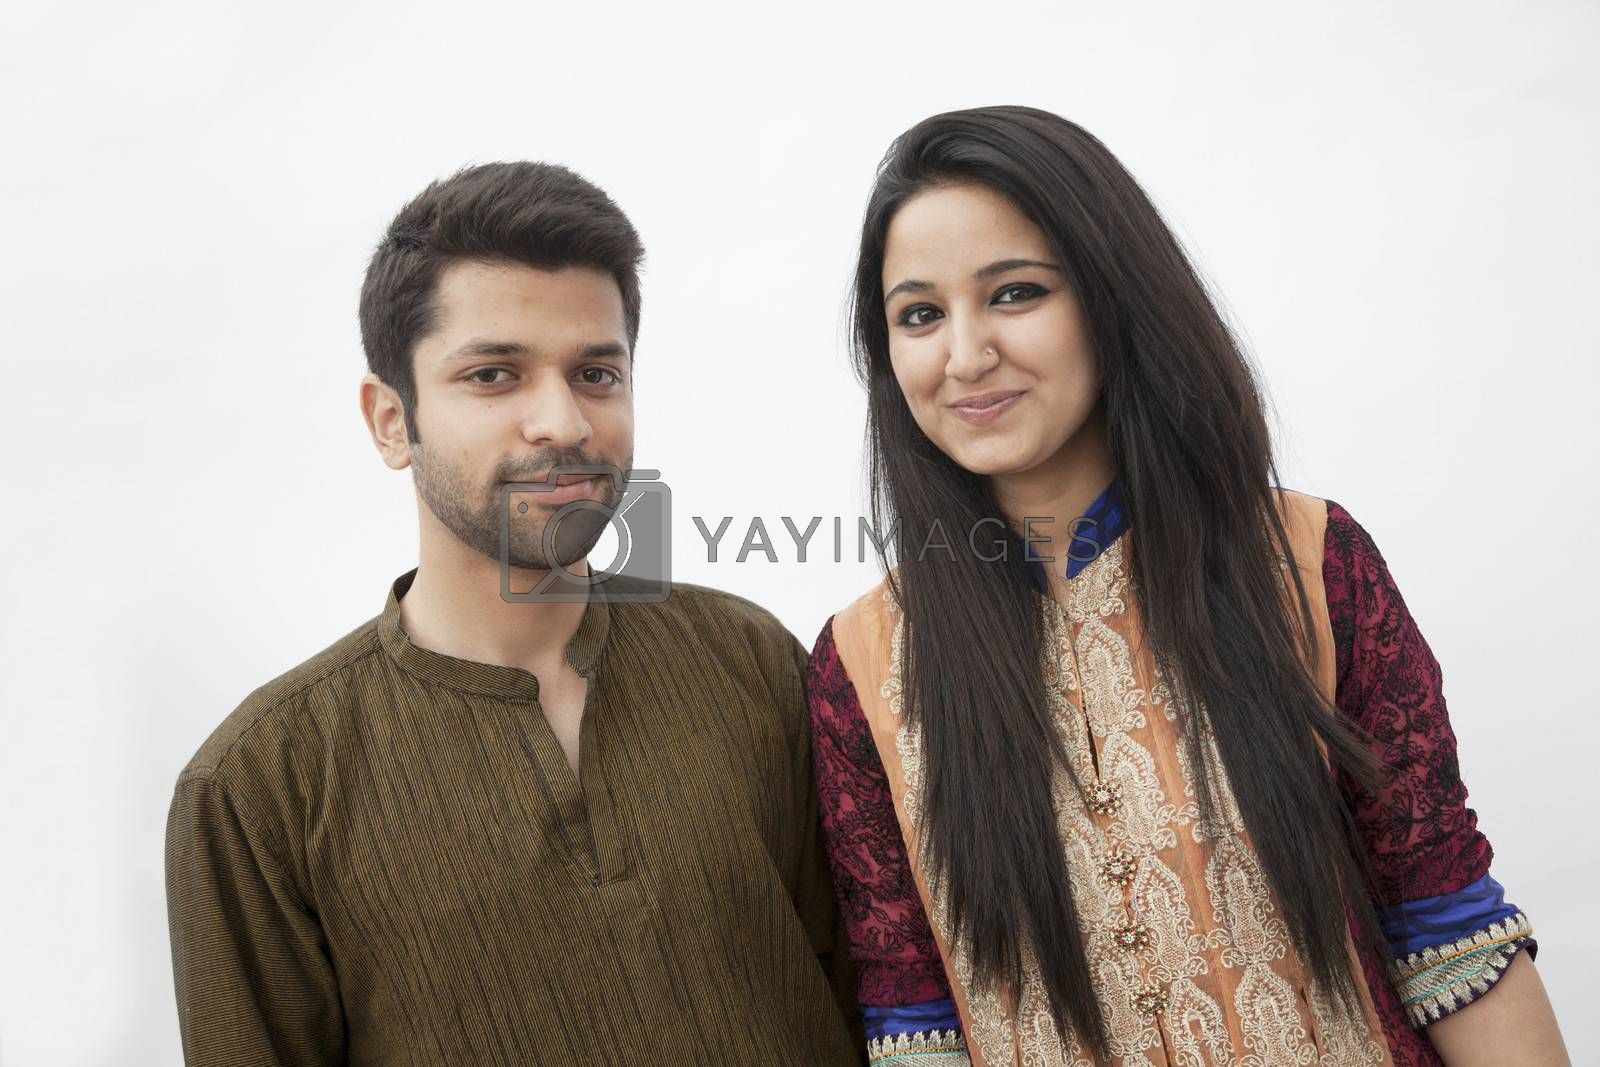 Portrait of smiling young couple wearing traditional clothing from Pakistan, studio shot